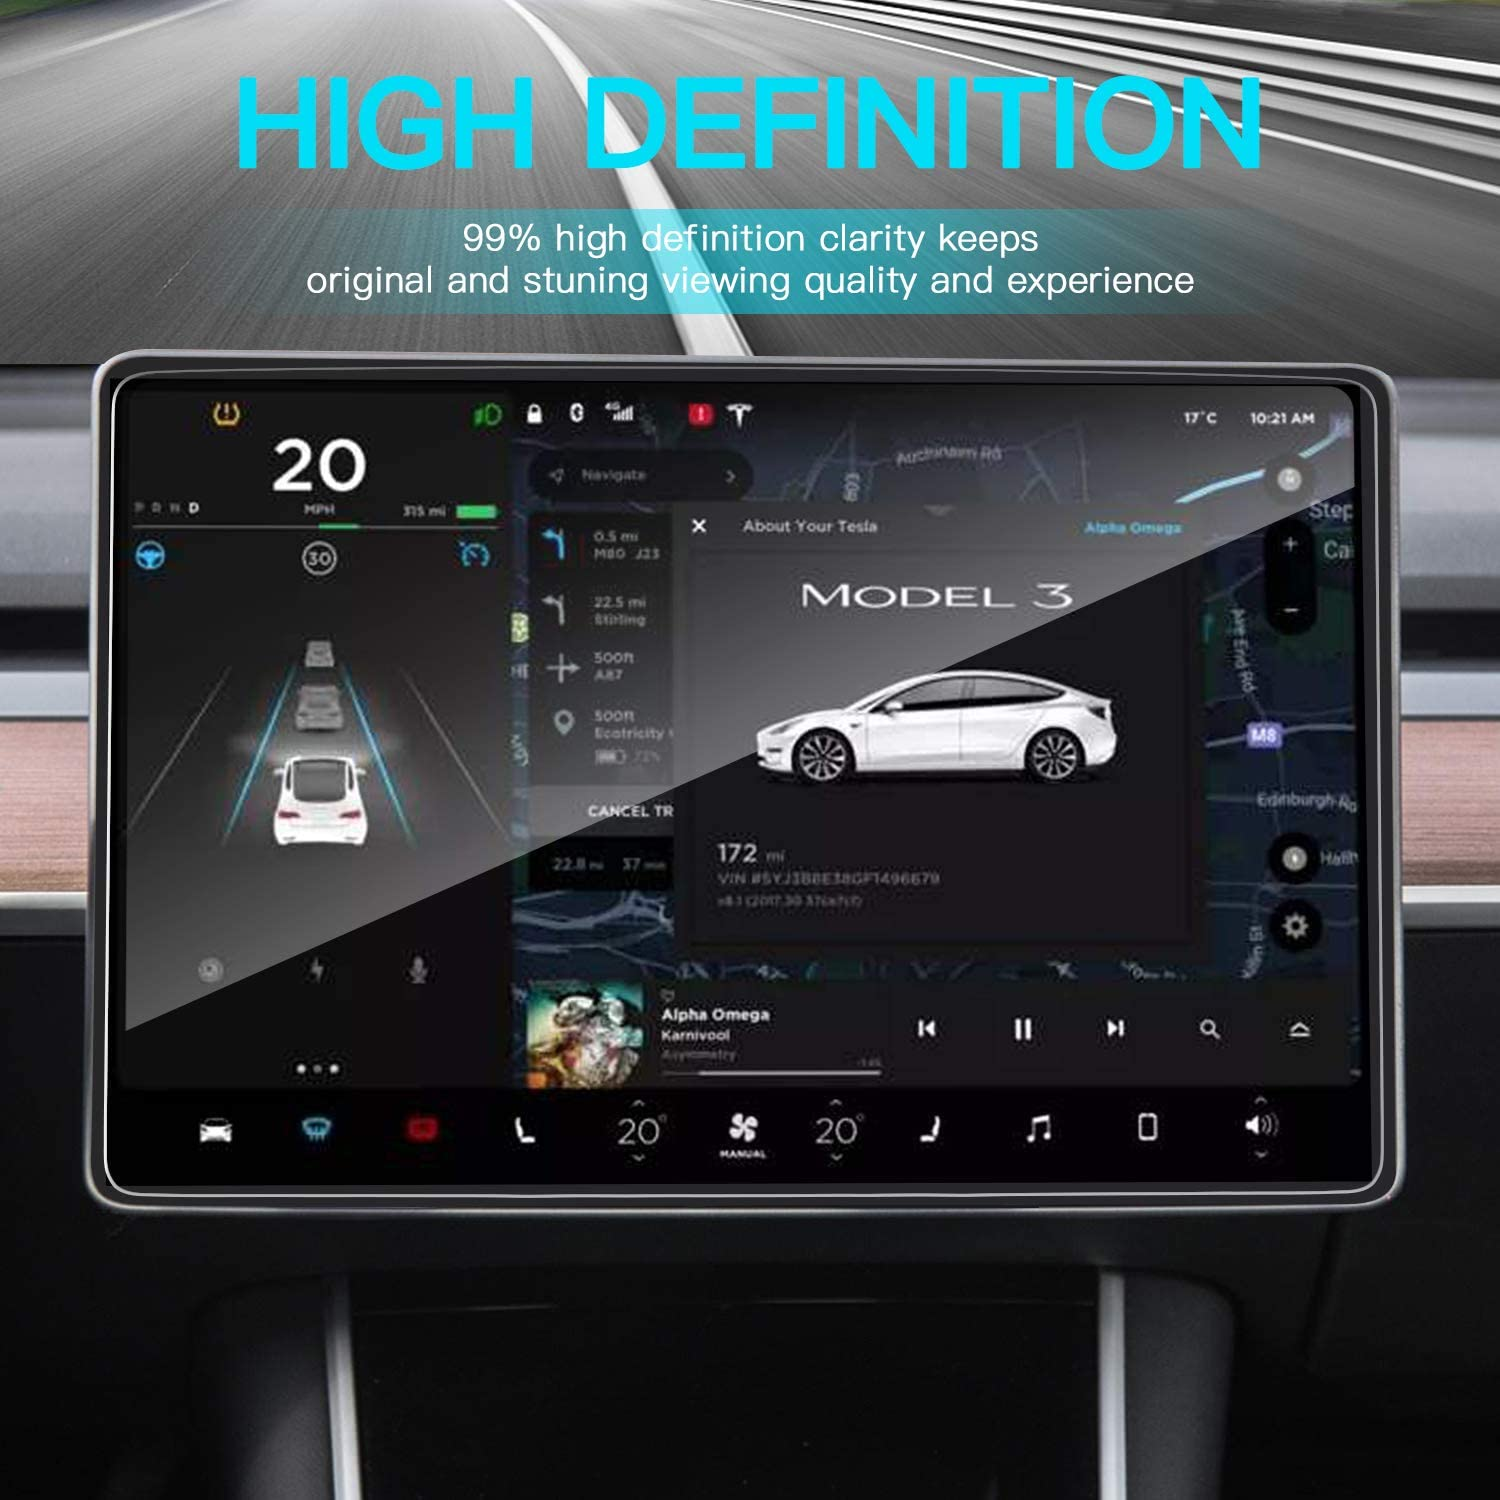 15 Tempered Glass Screen Protector Compatible with Tesla Model 3 Model Y Center Control Touchscreen Car Navigation Screen Protector Shock Resistant /& Anti-Fingerprint